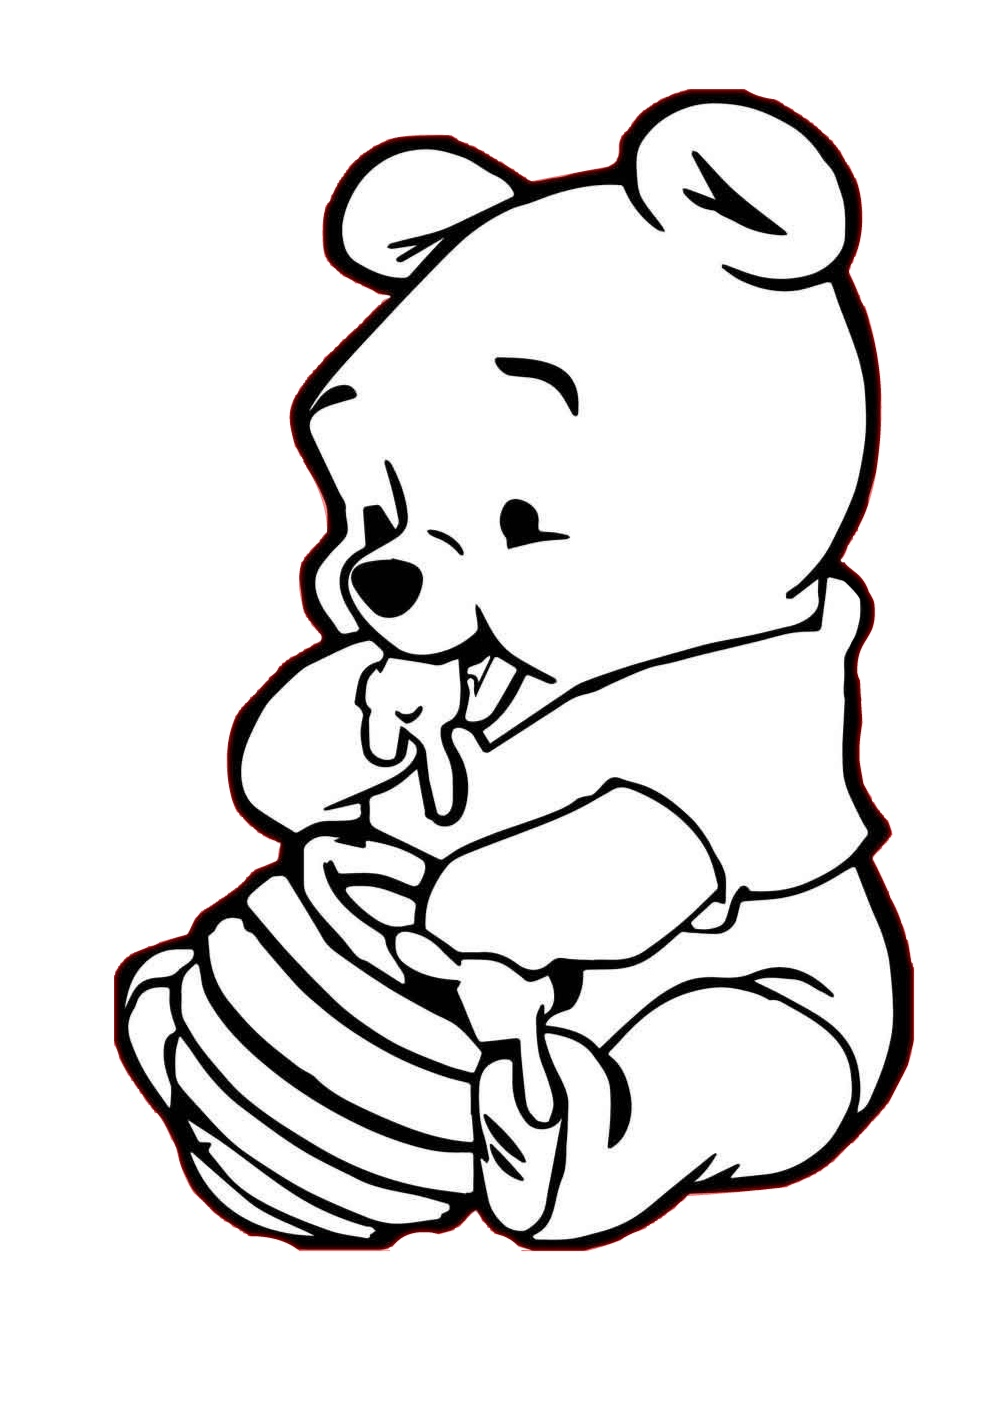 Coloring Pages of Cute Little Baby Pooh Bear Eating Honey